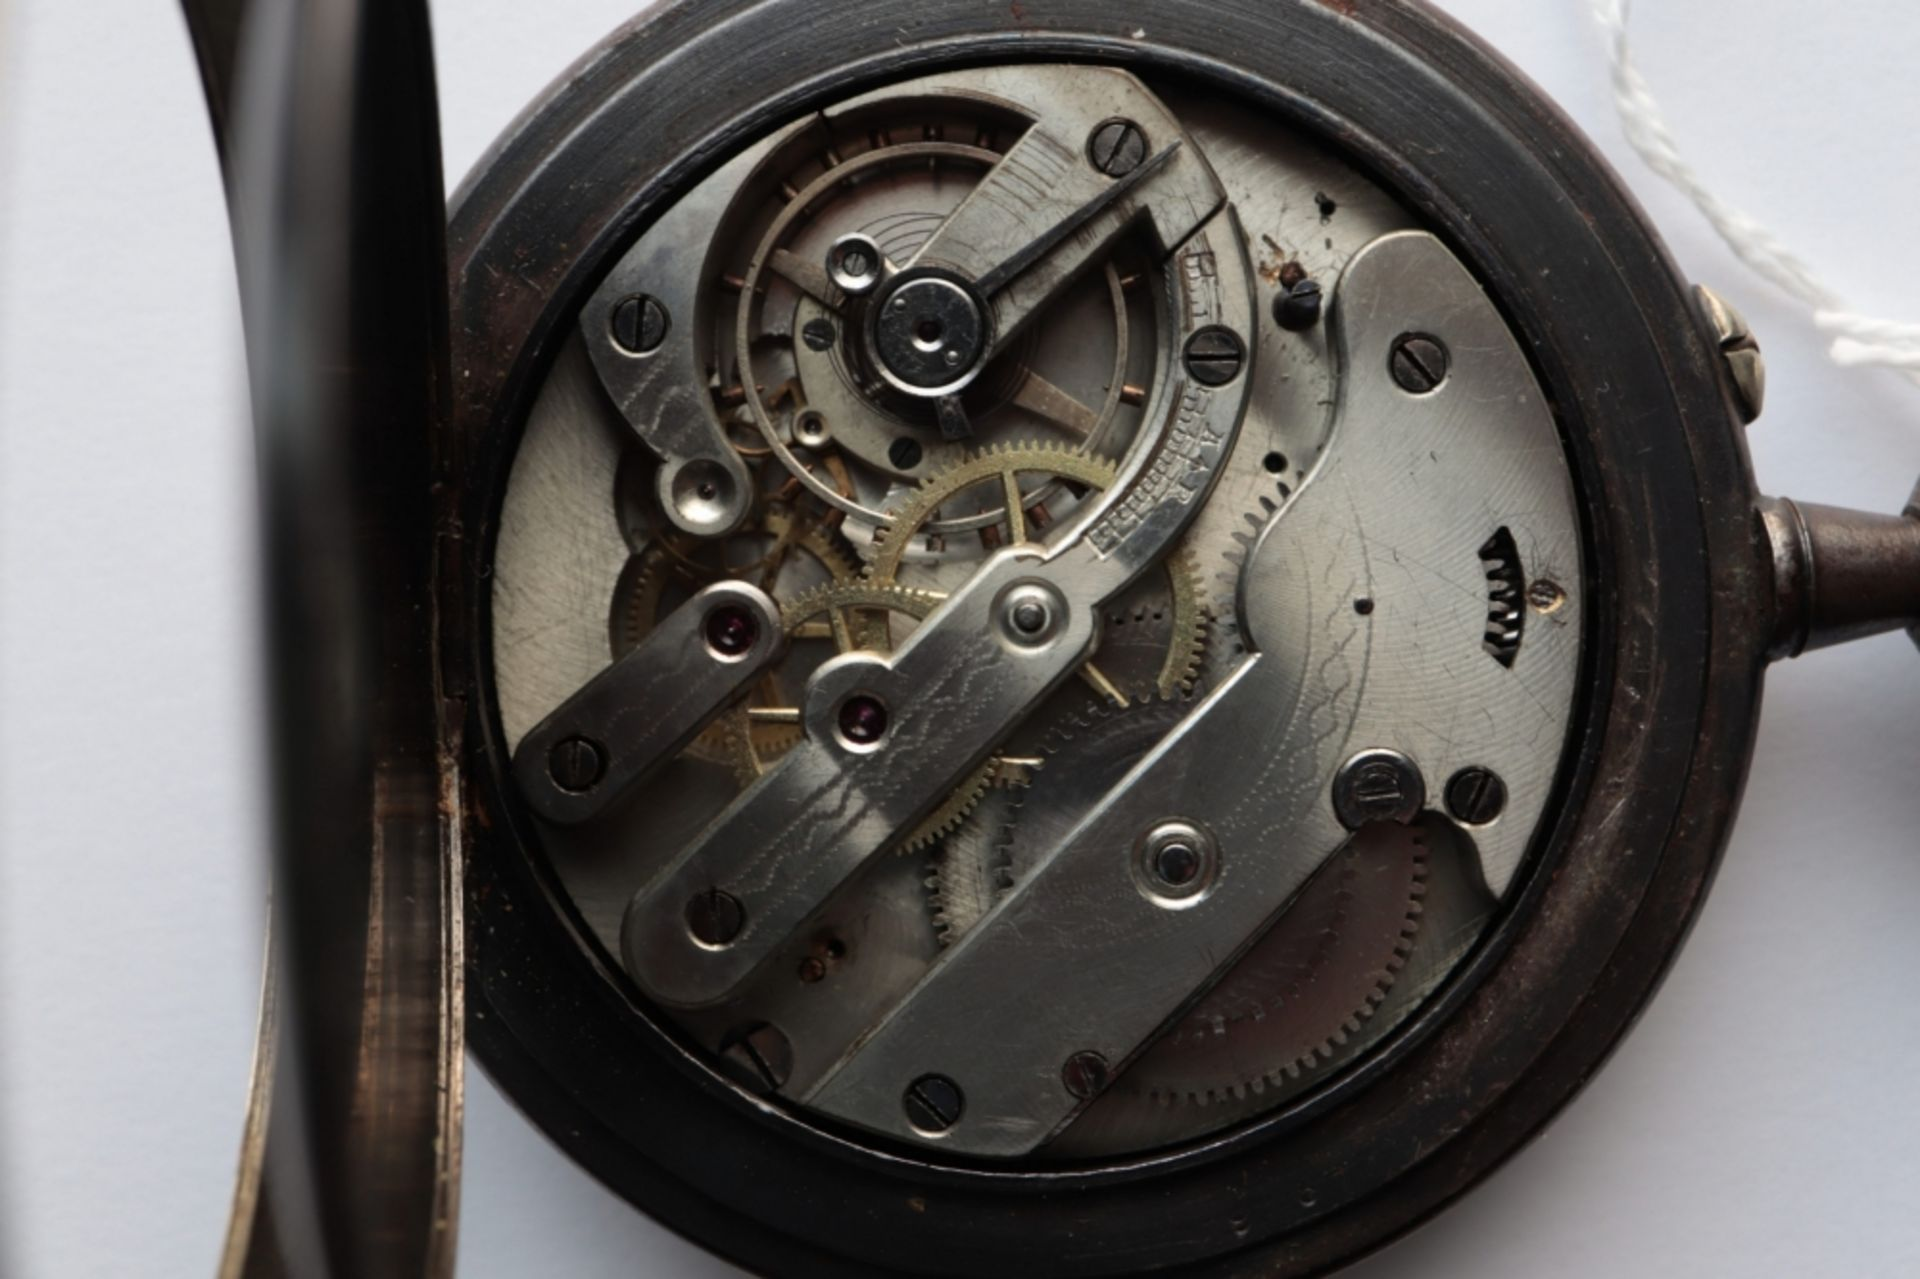 Lot of 6 watches including 4 pocket watches, a travel alarm clock and a wristwatch. - Image 6 of 7